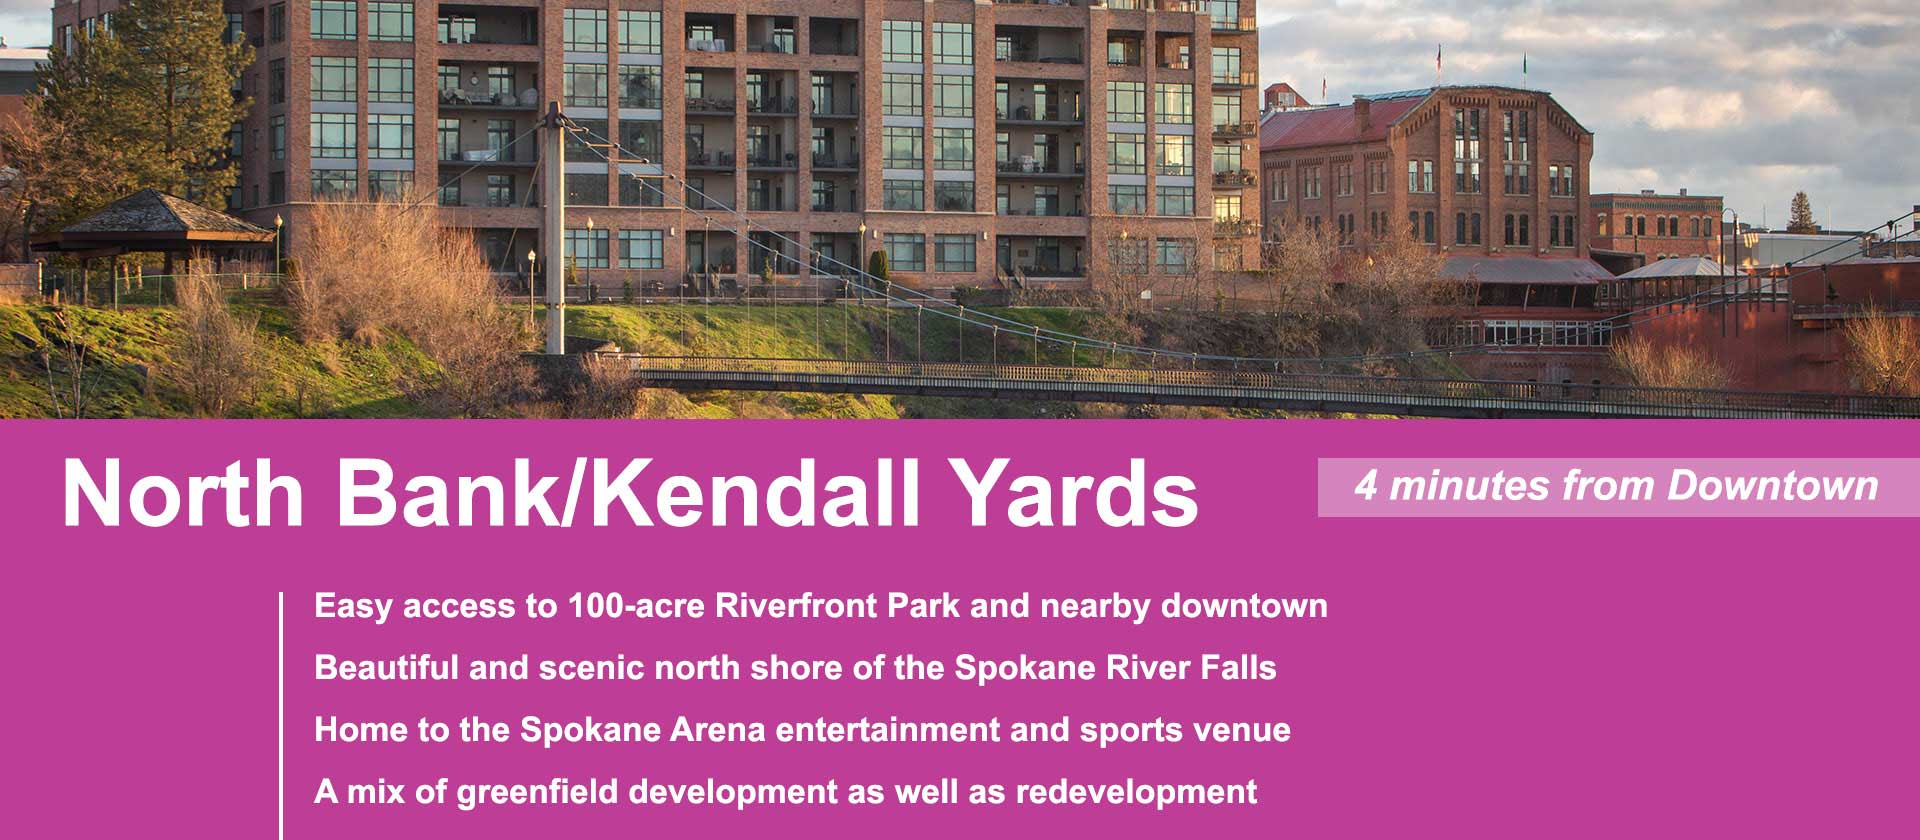 North Bank/Kendall Yards